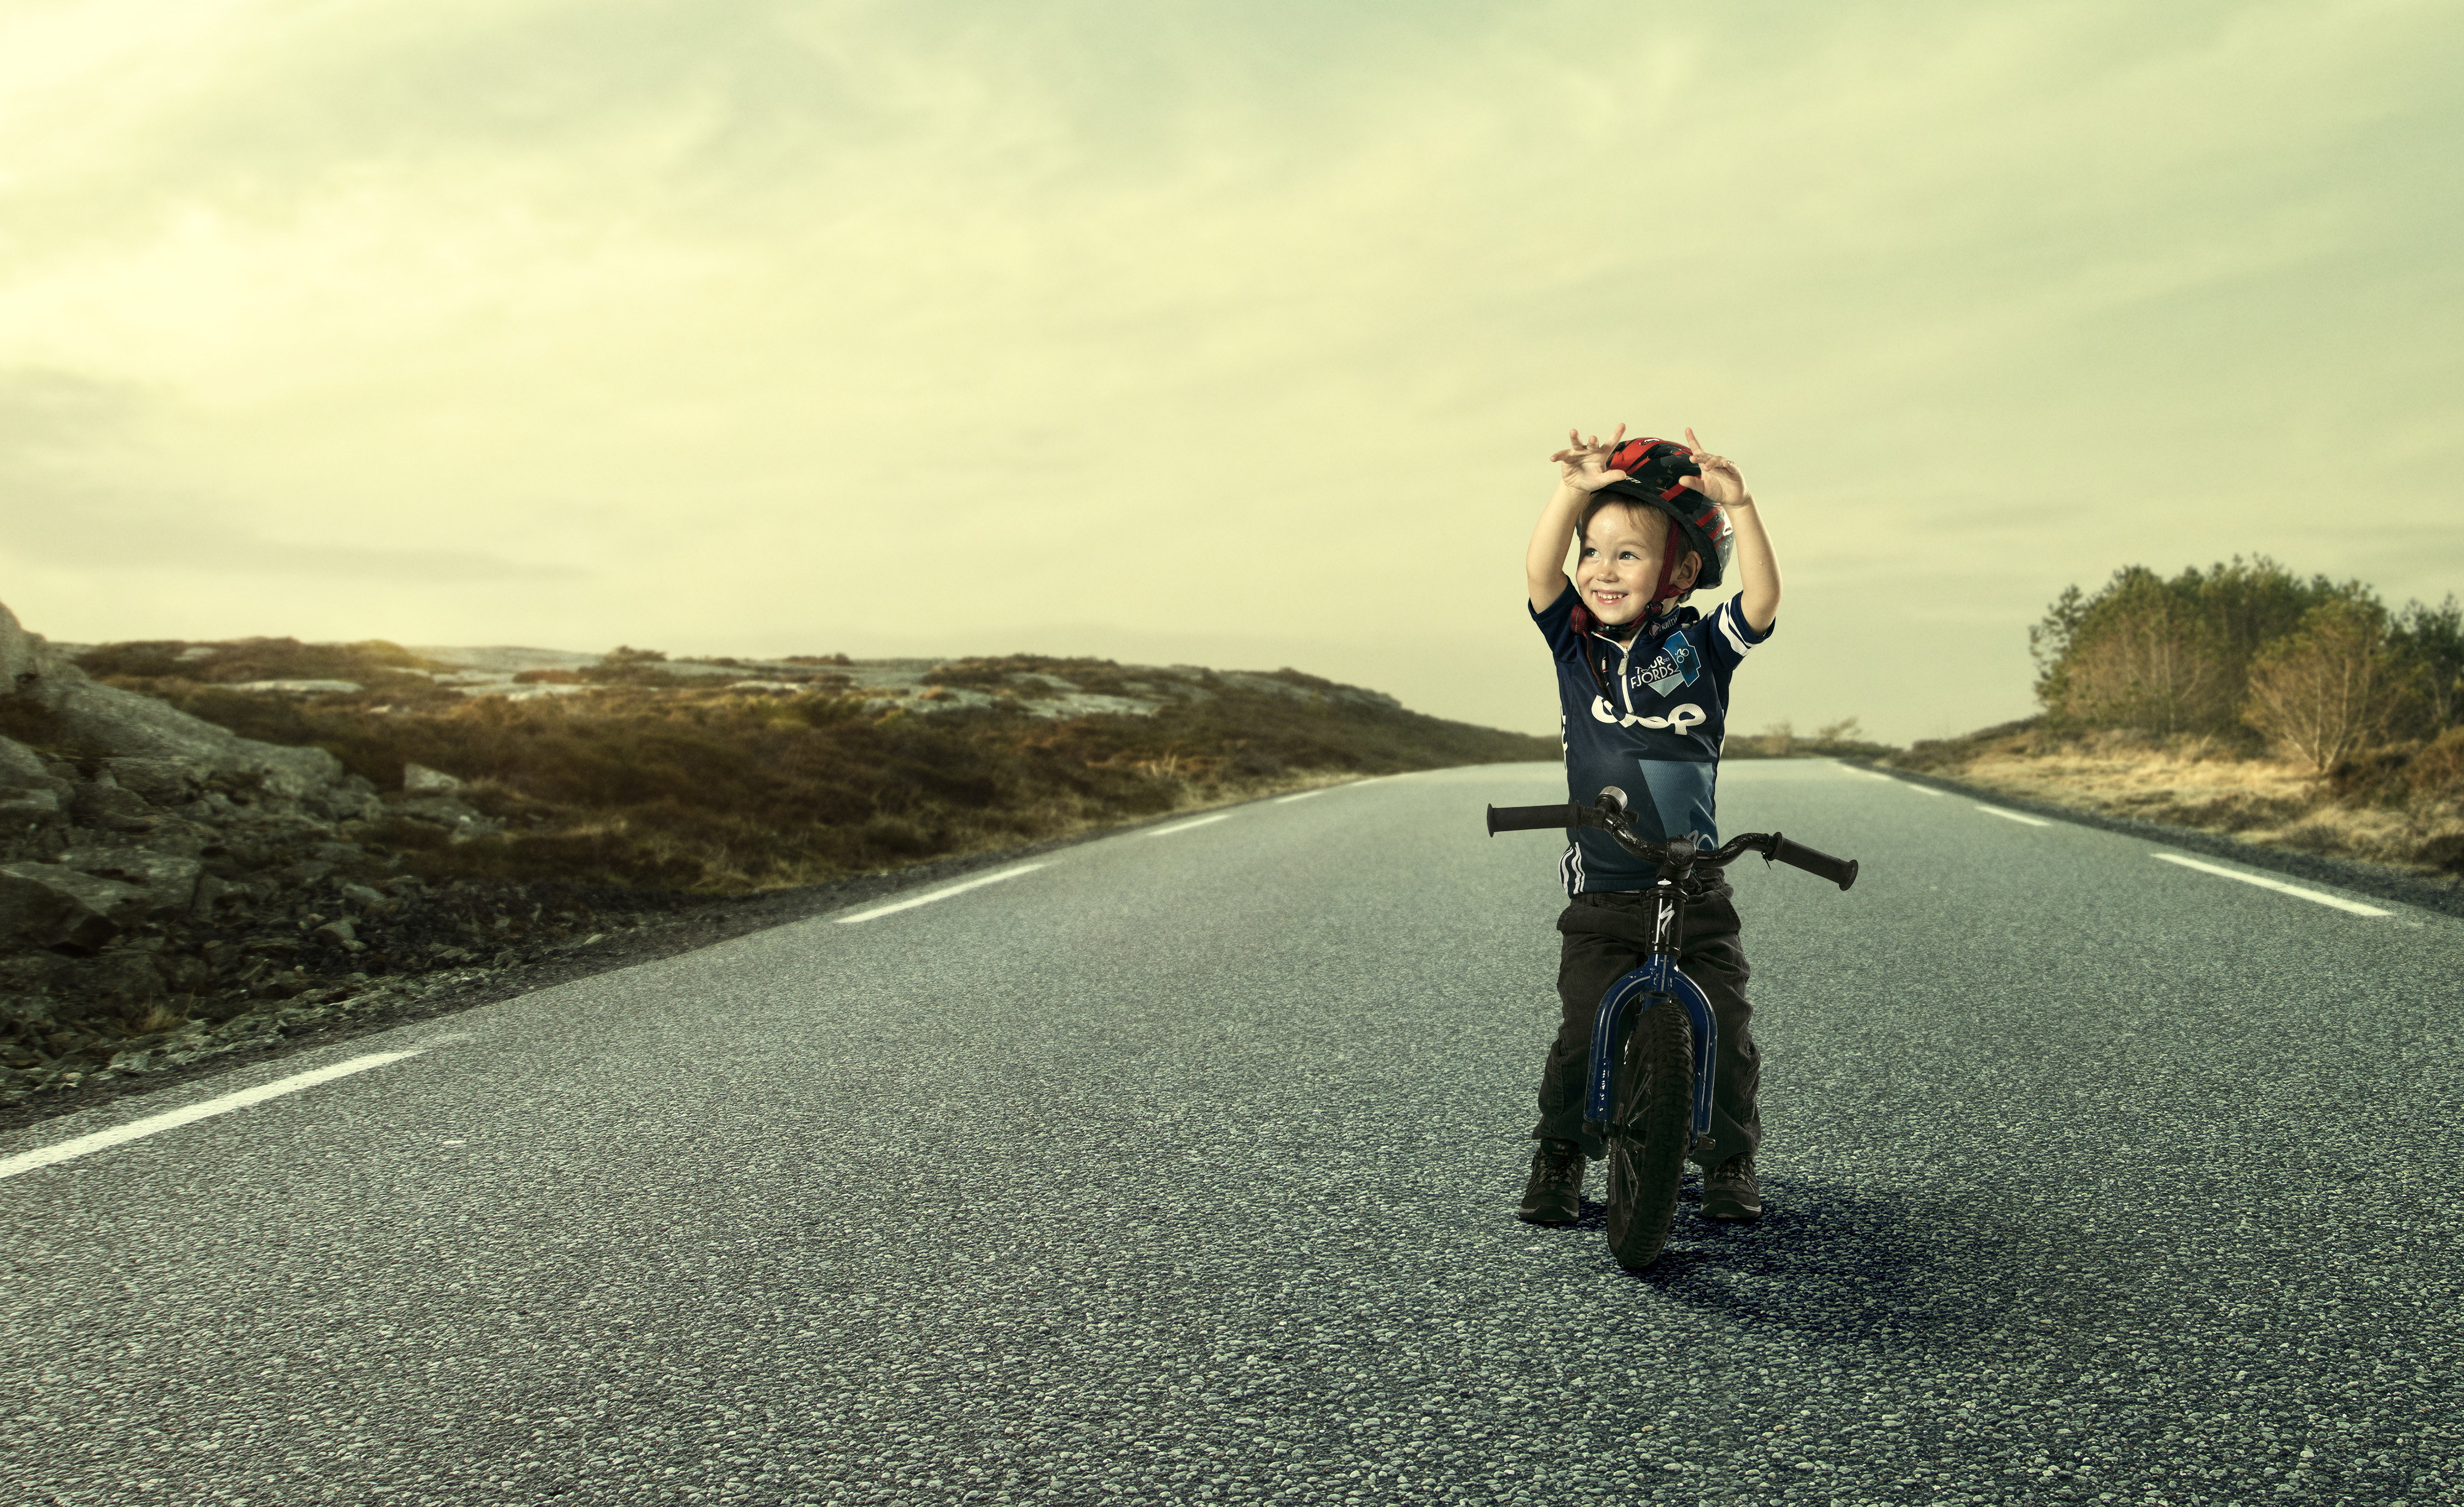 the champions of tomorrow are the young riders of today